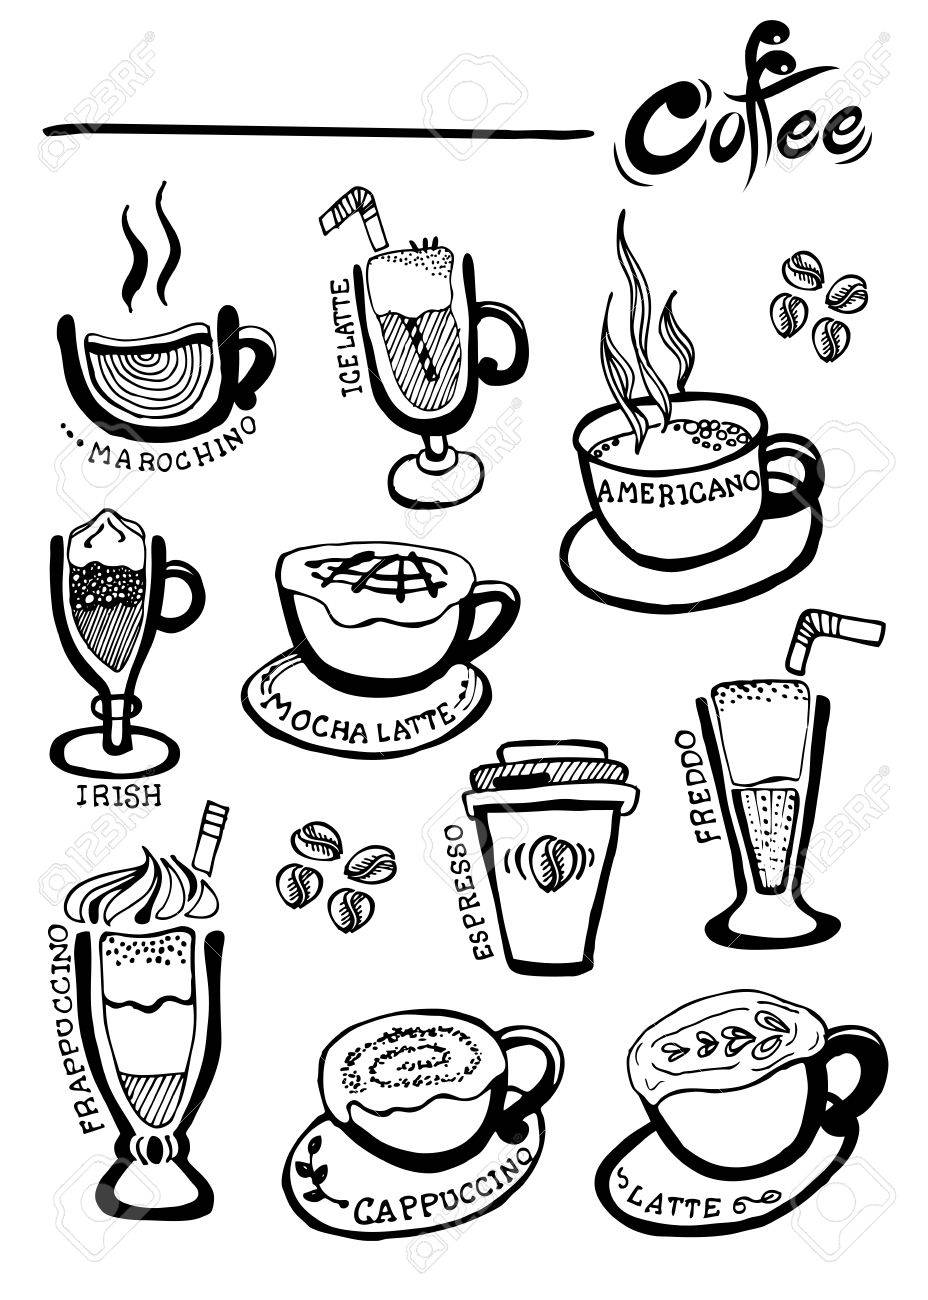 Coffee Hand Drawn vector, Doodles - 35707382